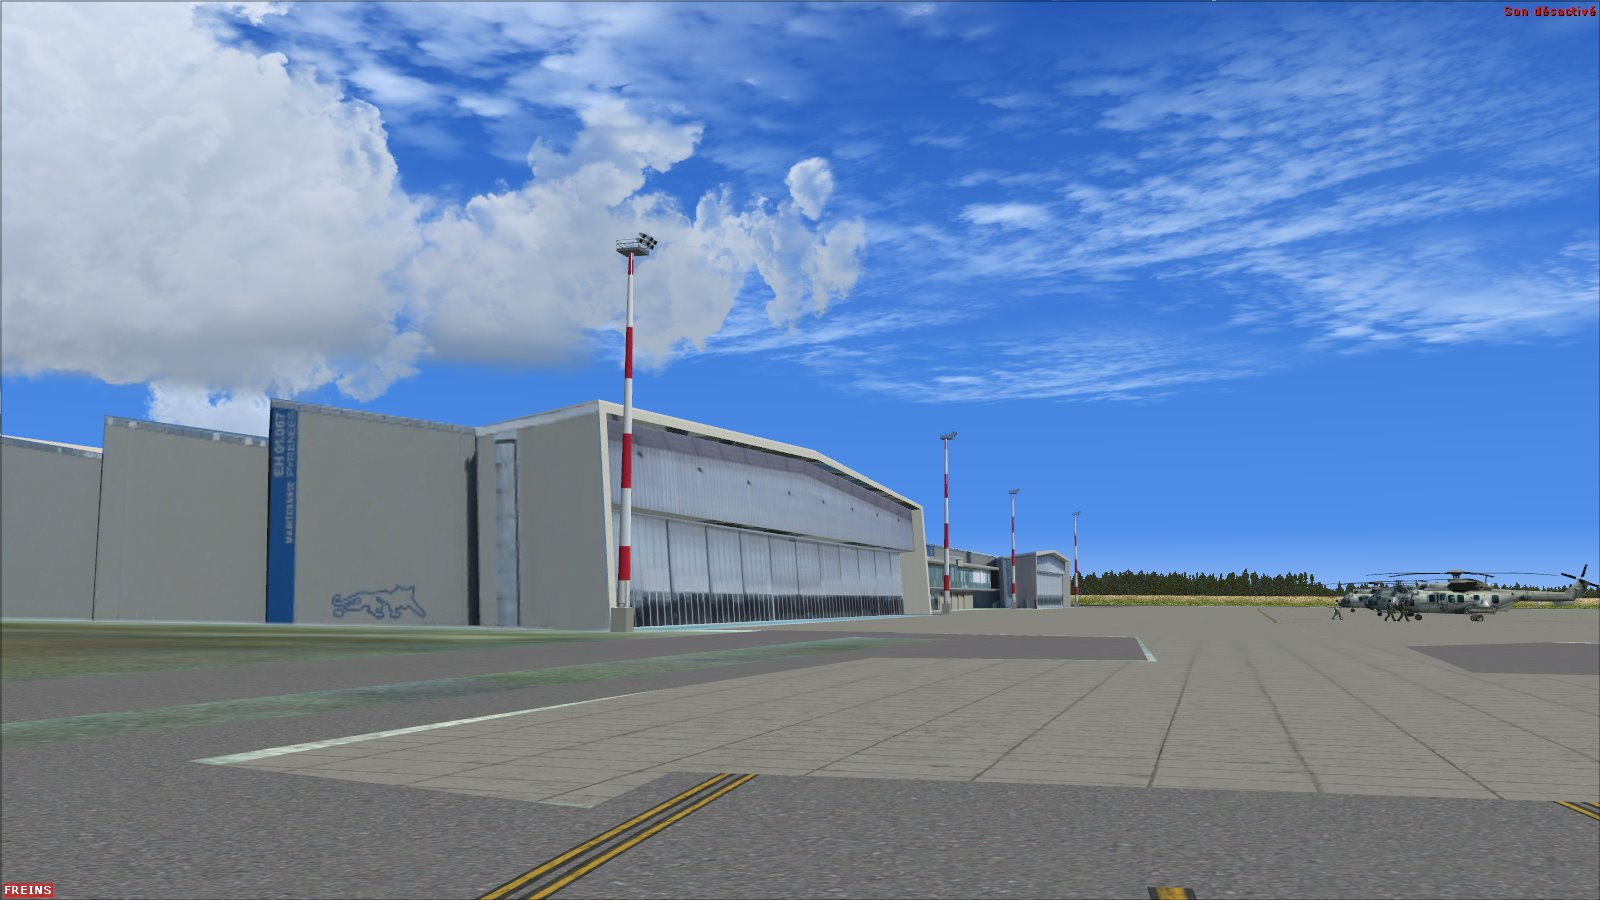 SKYDESIGNERS - FRENCH AIRBASE 120 CAZAUX